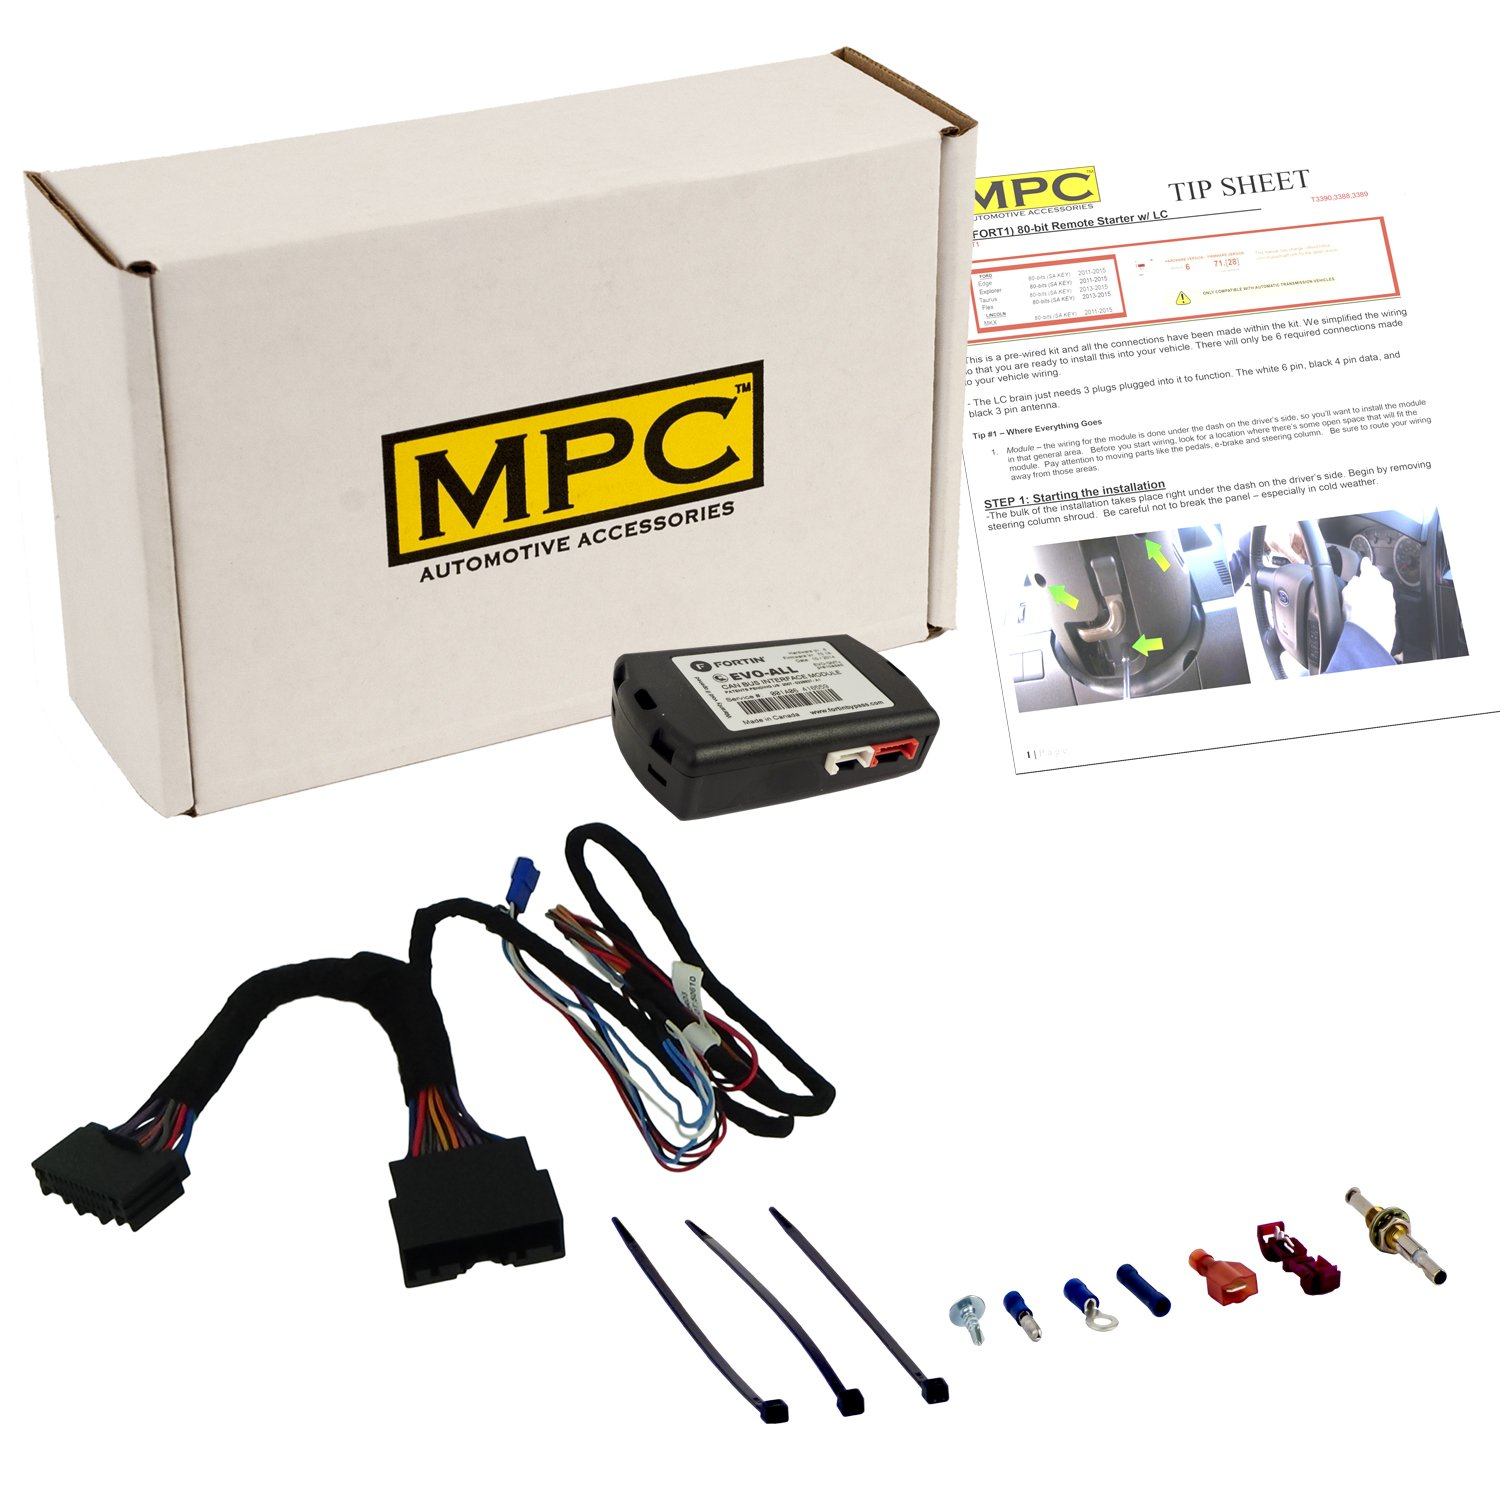 MPC Complete Plug-n-Play Factory Remote Activated Remote Start Kit for 2015-2018 Ford Edge - w/Bypass - Firmware Preloaded